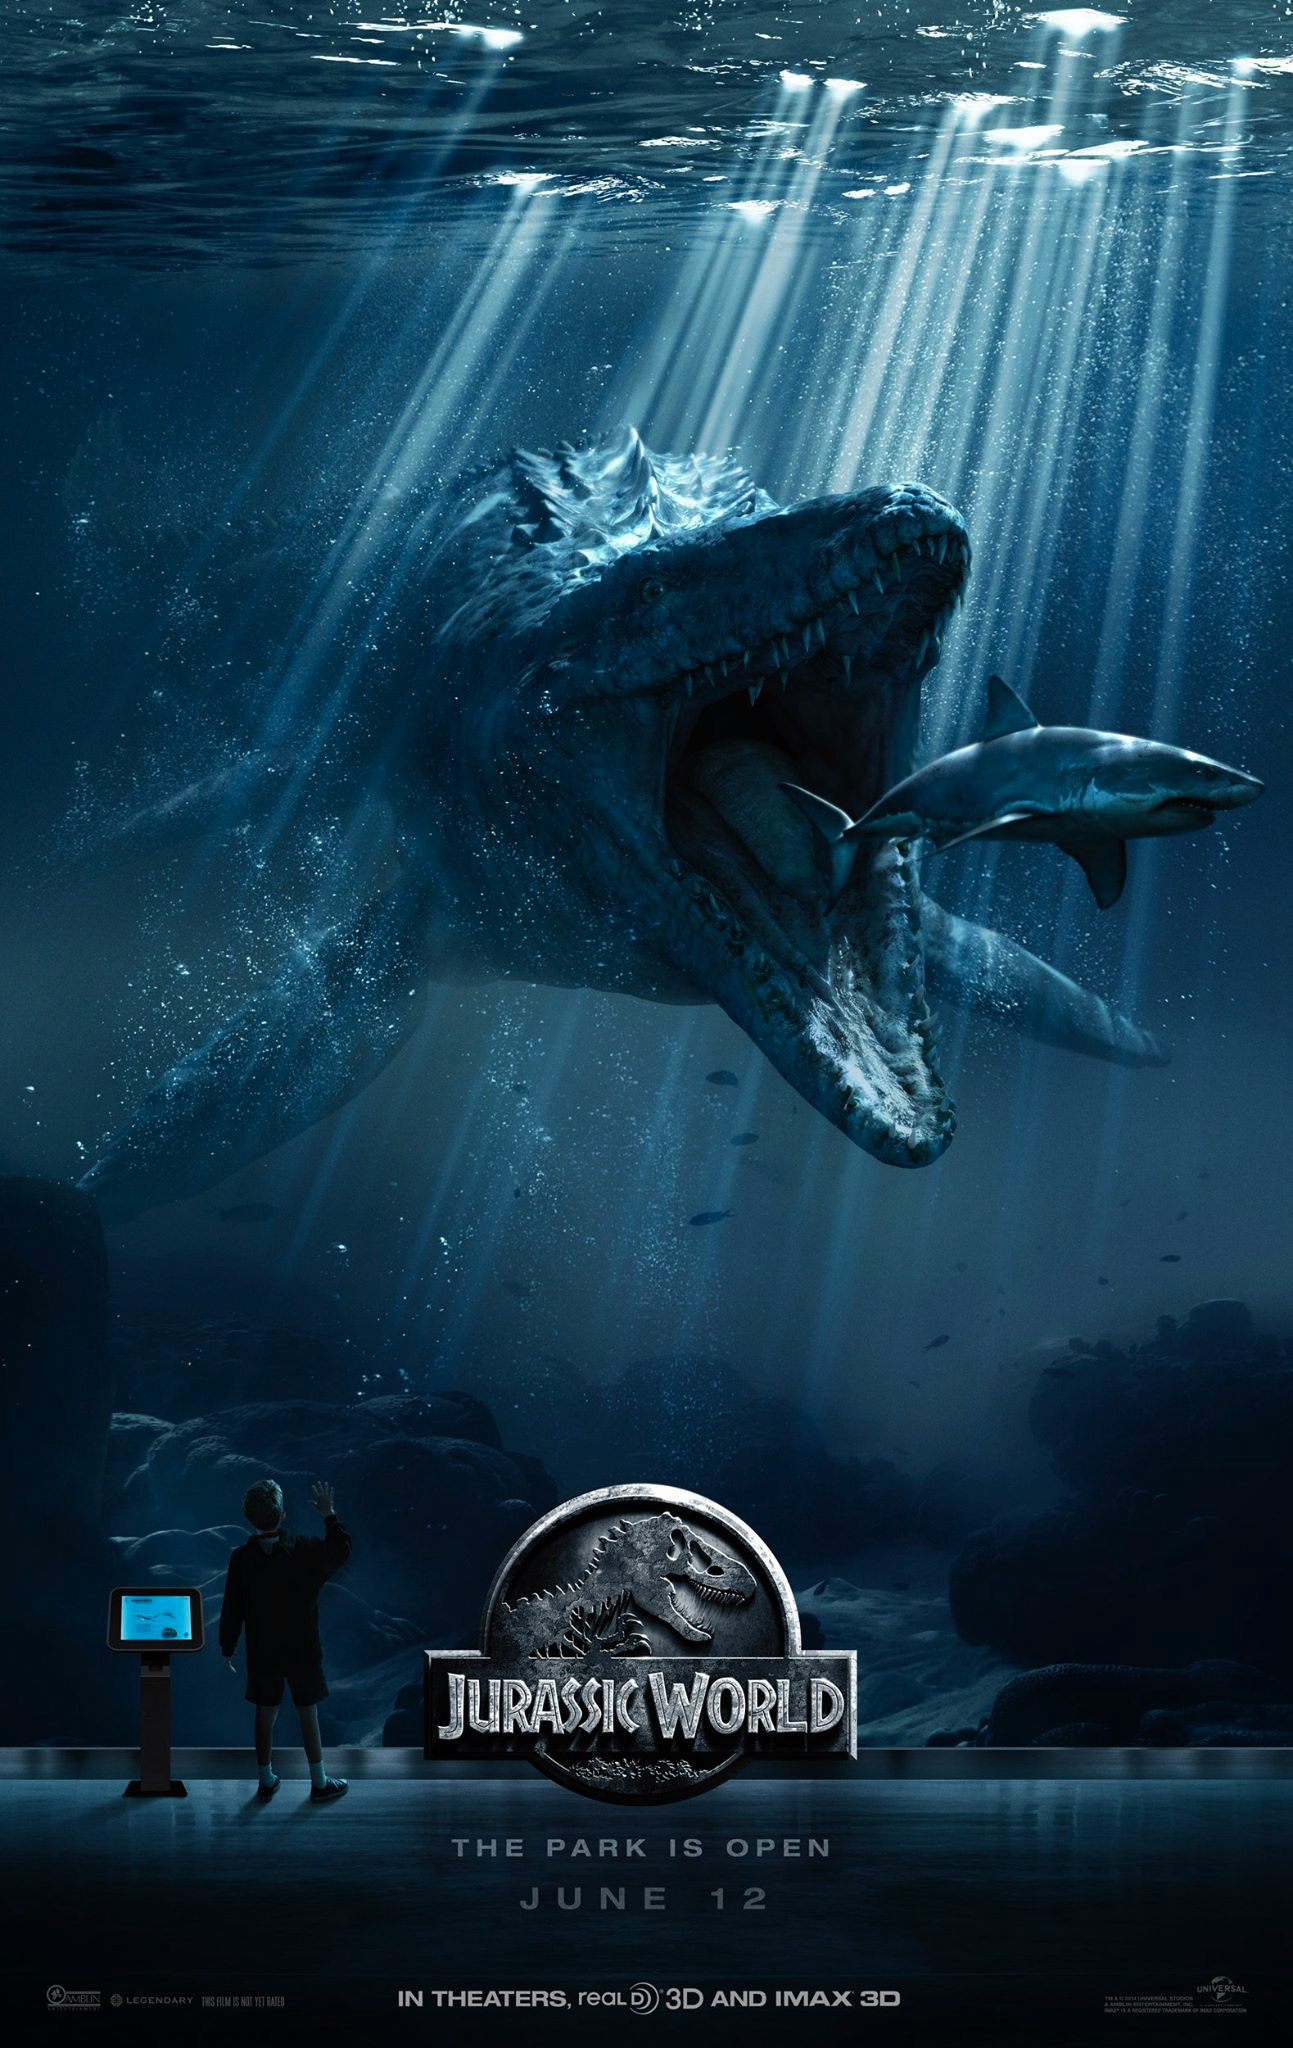 jurassic-world-poster-dino-eating-shark